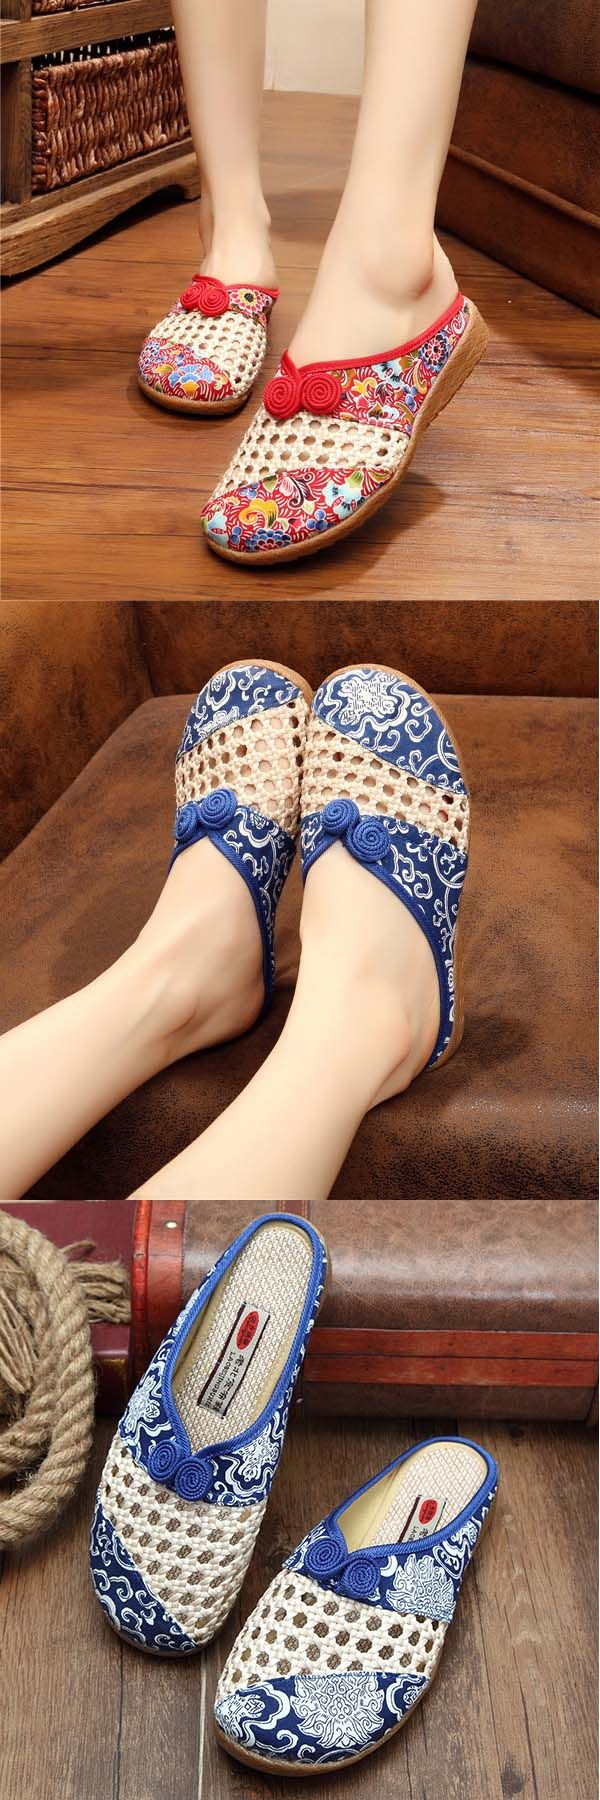 US$22.69 + Free shipping. Embroidery floral slipper, slip on flat shoes, Slipper Shoes, casual slipper, outdoor slipper. Upper material: cloth.